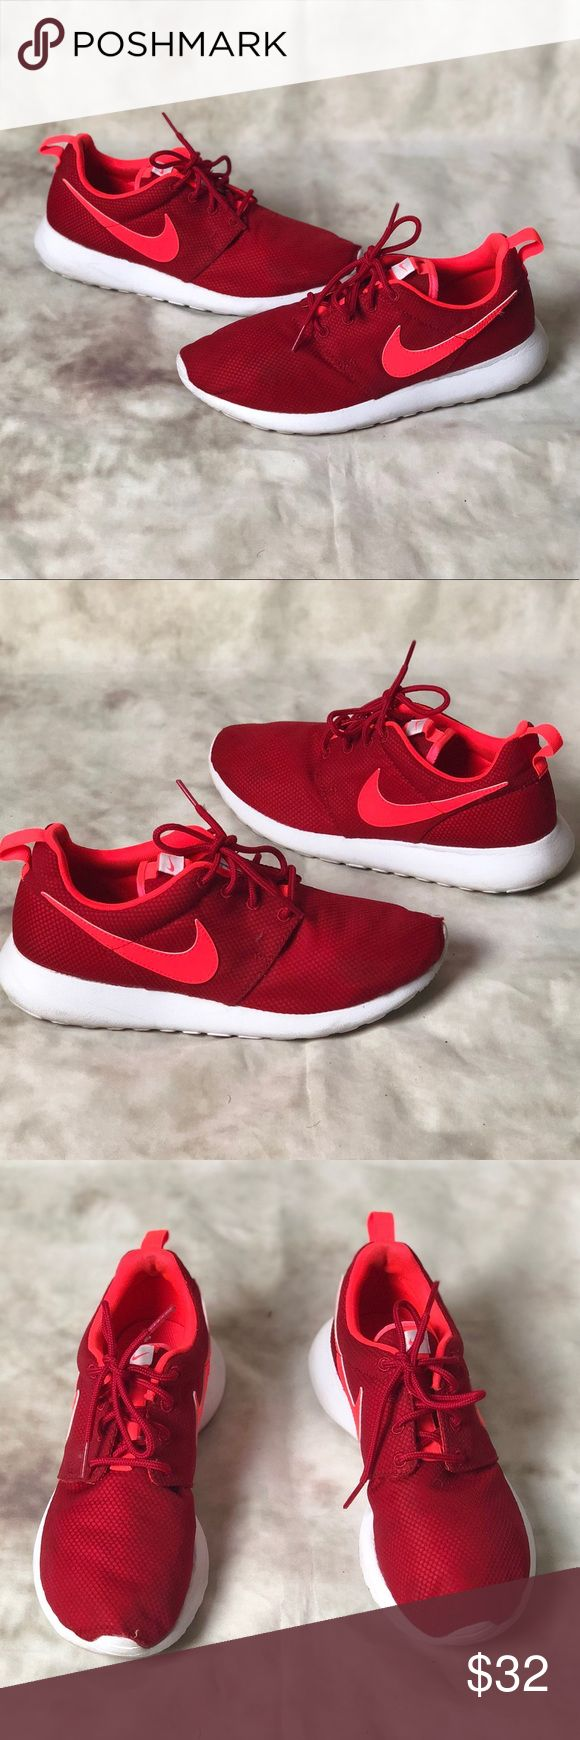 Nike Roshe Run Sneakers Red/Neon Orange Pre owned Nike Roshe Run Sneakers in a Women's 8 (Shoe is marked 6.5 Y will fit a women's 8) shoes are in overall good condition, slight defect on front left toe of sneaker, minor but I wanted to mention it. Please refer to photos. Nike Shoes Sneakers